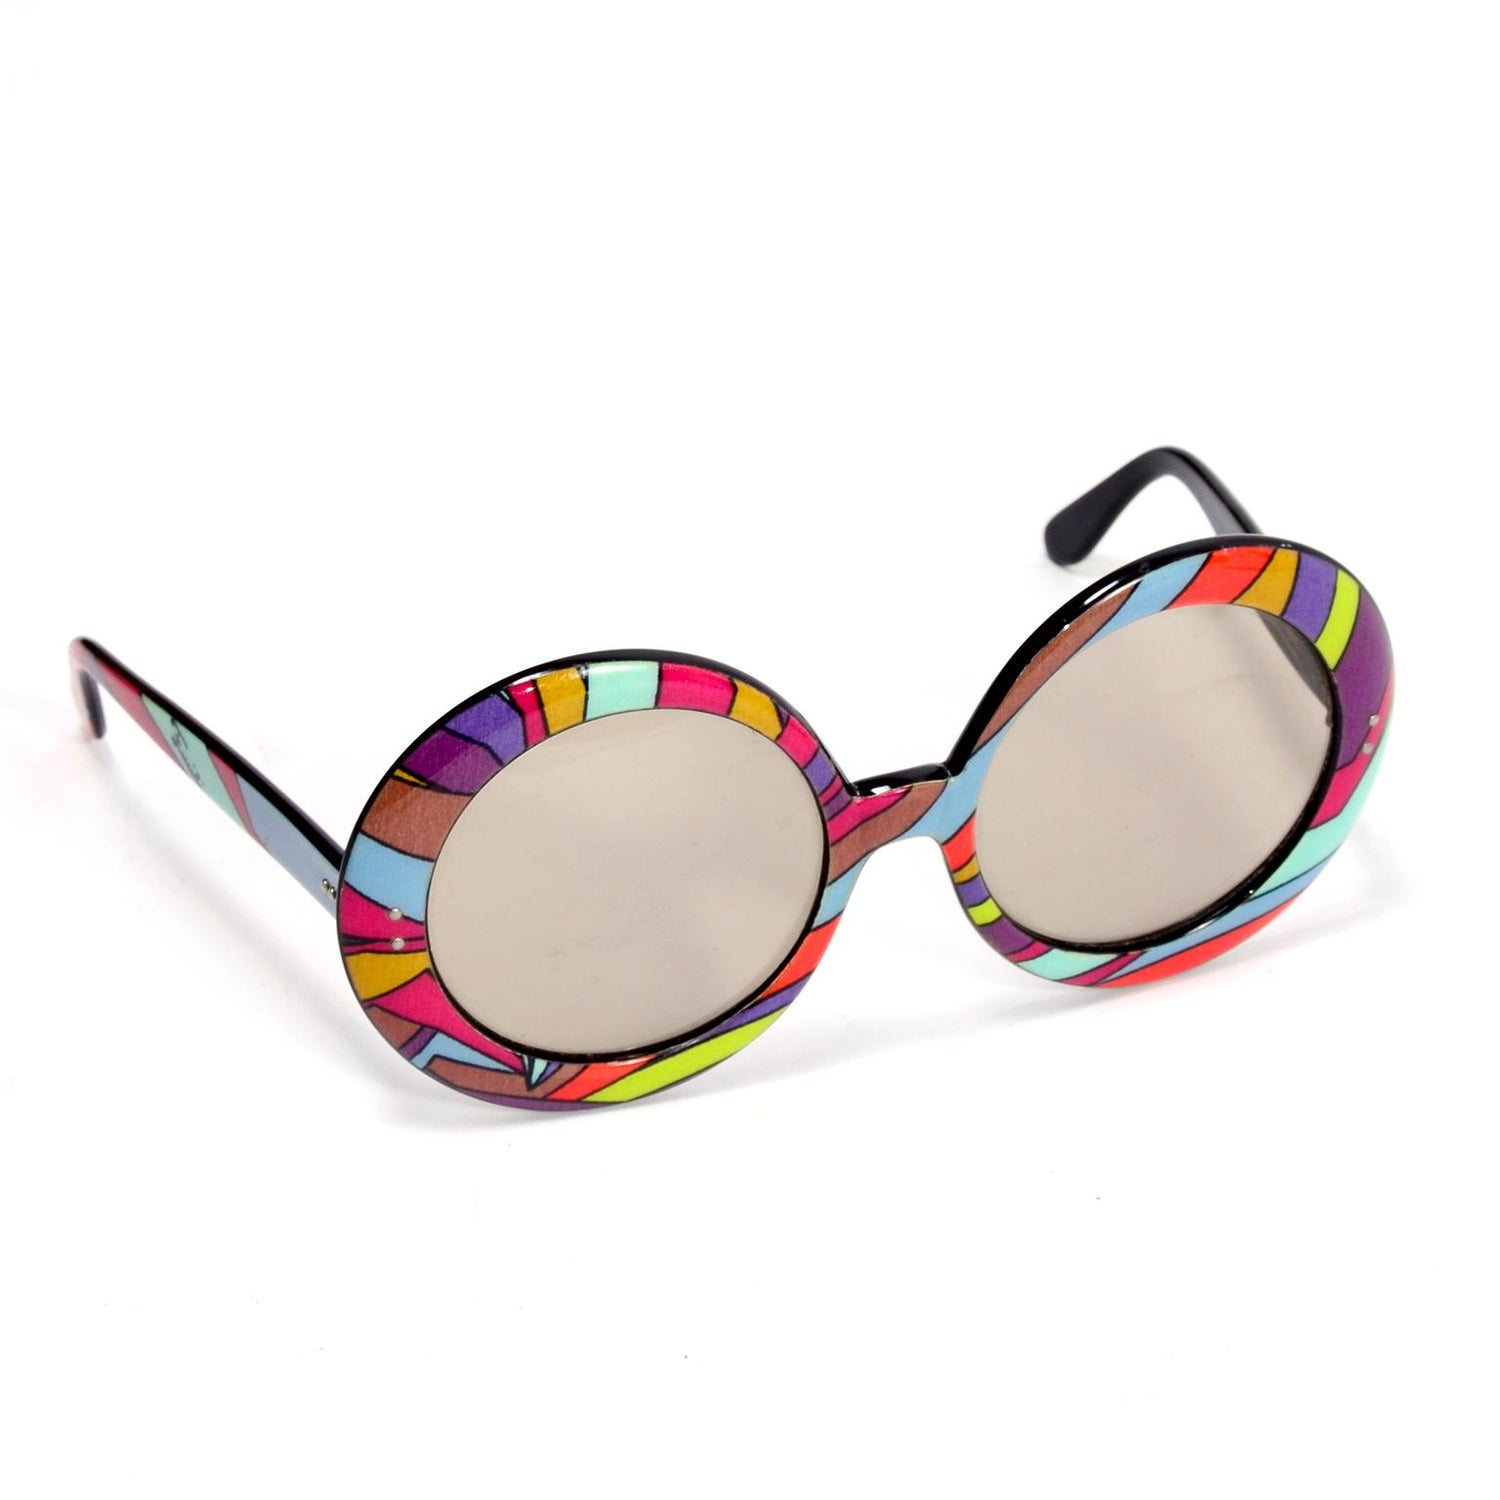 defa972ad85cc Emilio Pucci Vintage Oversized Round Colorful Print Sunglasses at 1stdibs